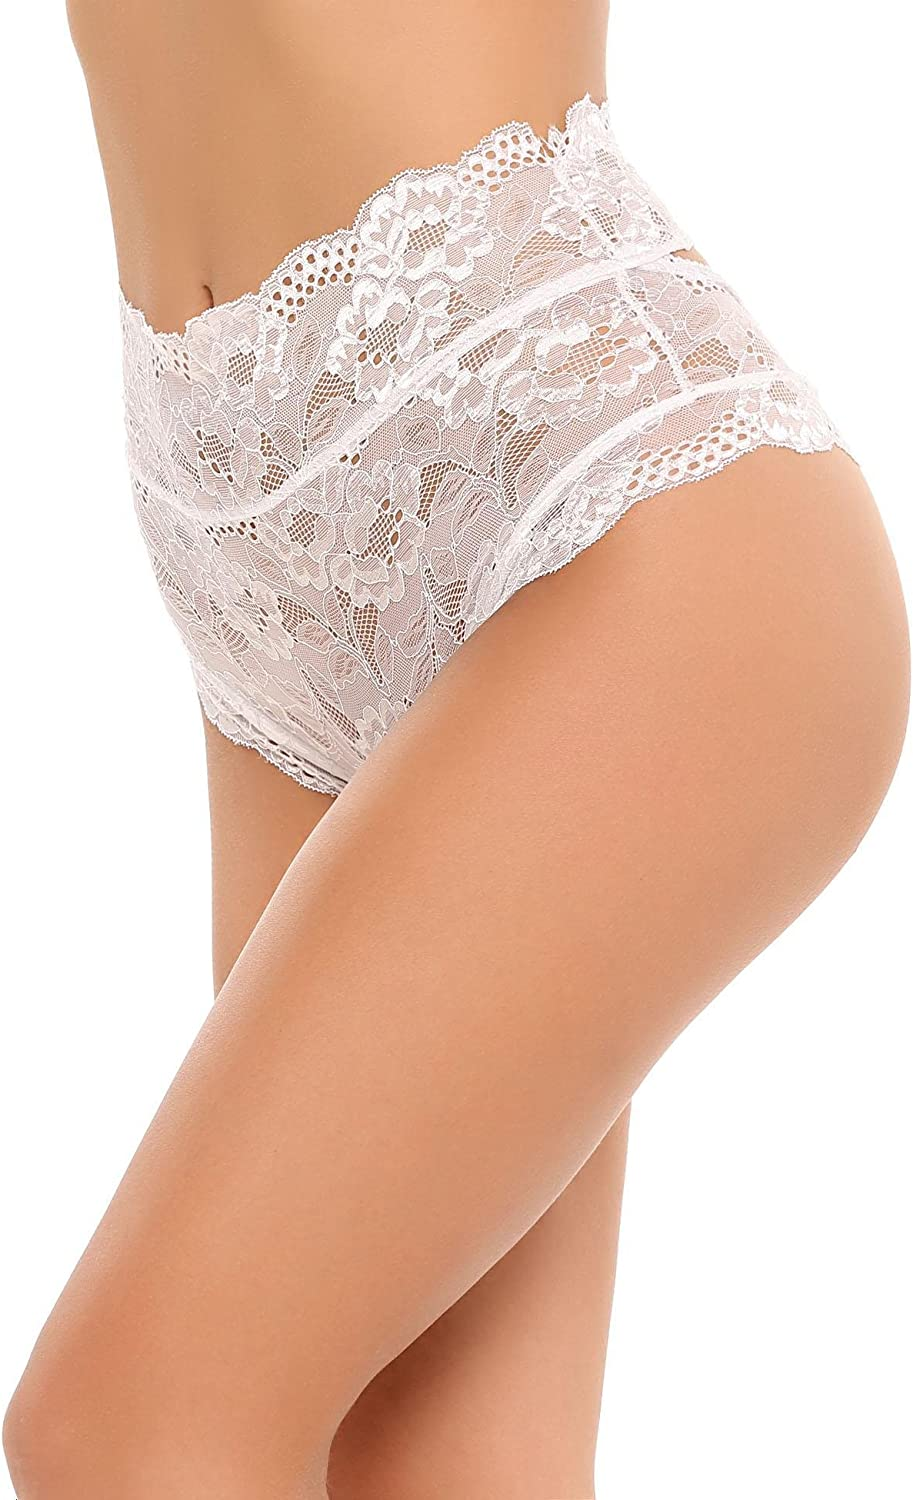 Bifast Womens Lace High Waist G-string Briefs Panties Hollow Out Thongs Lingerie Underwear Knickers